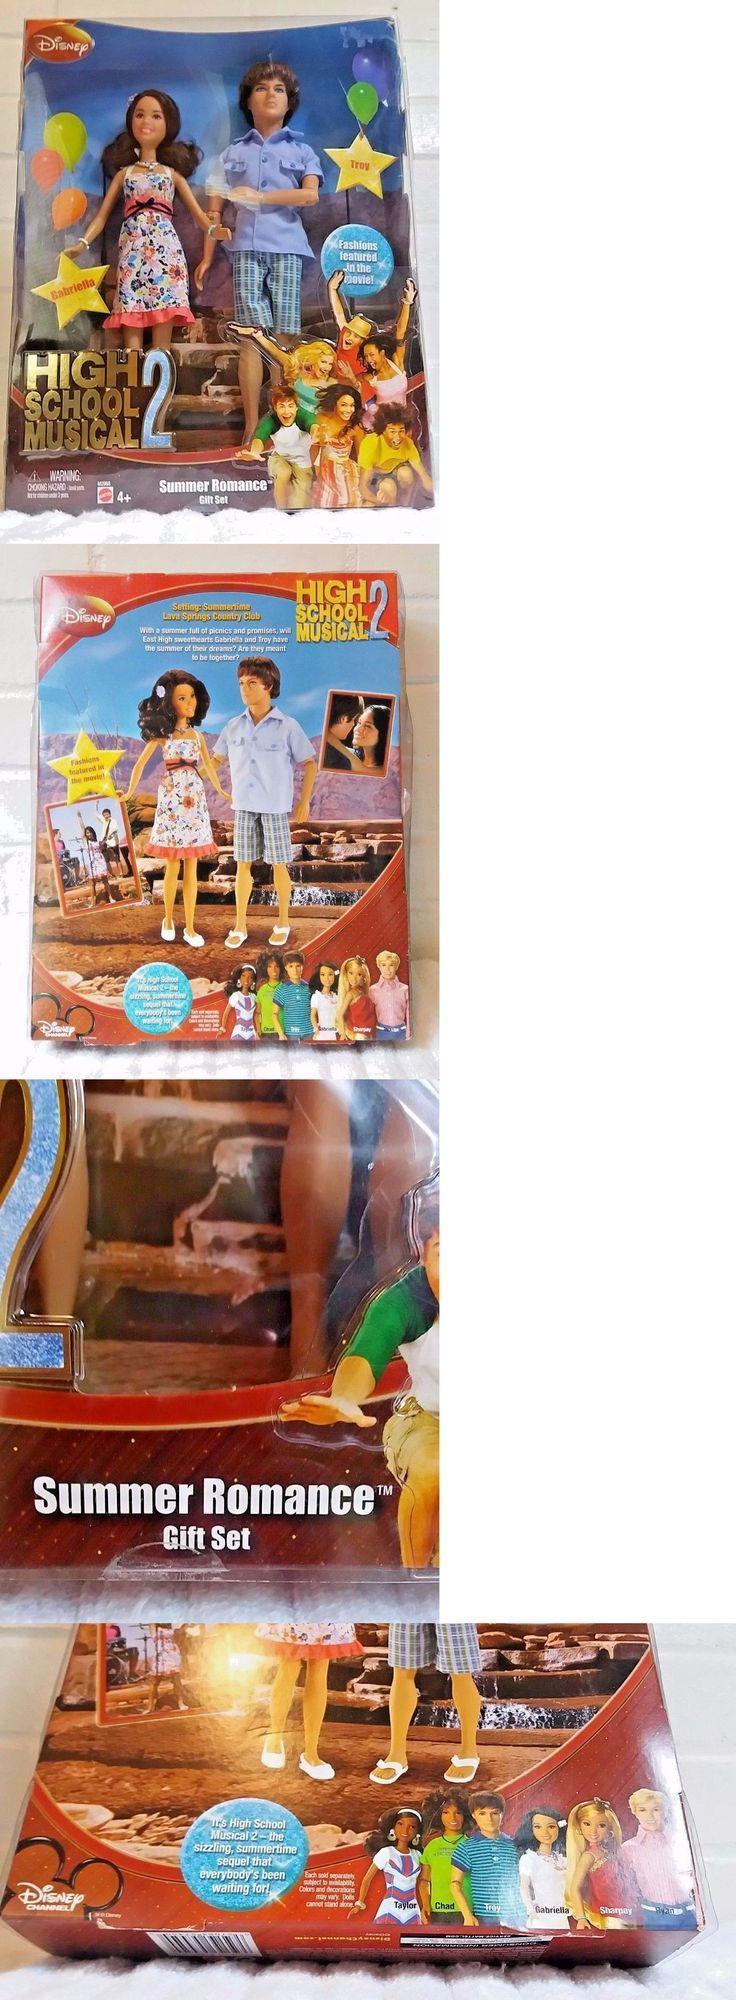 High School Musical 158764: High School Musical 2 Summer Romance Gift Set Disney Troy And Gabriella Dolls -> BUY IT NOW ONLY: $49.99 on eBay!